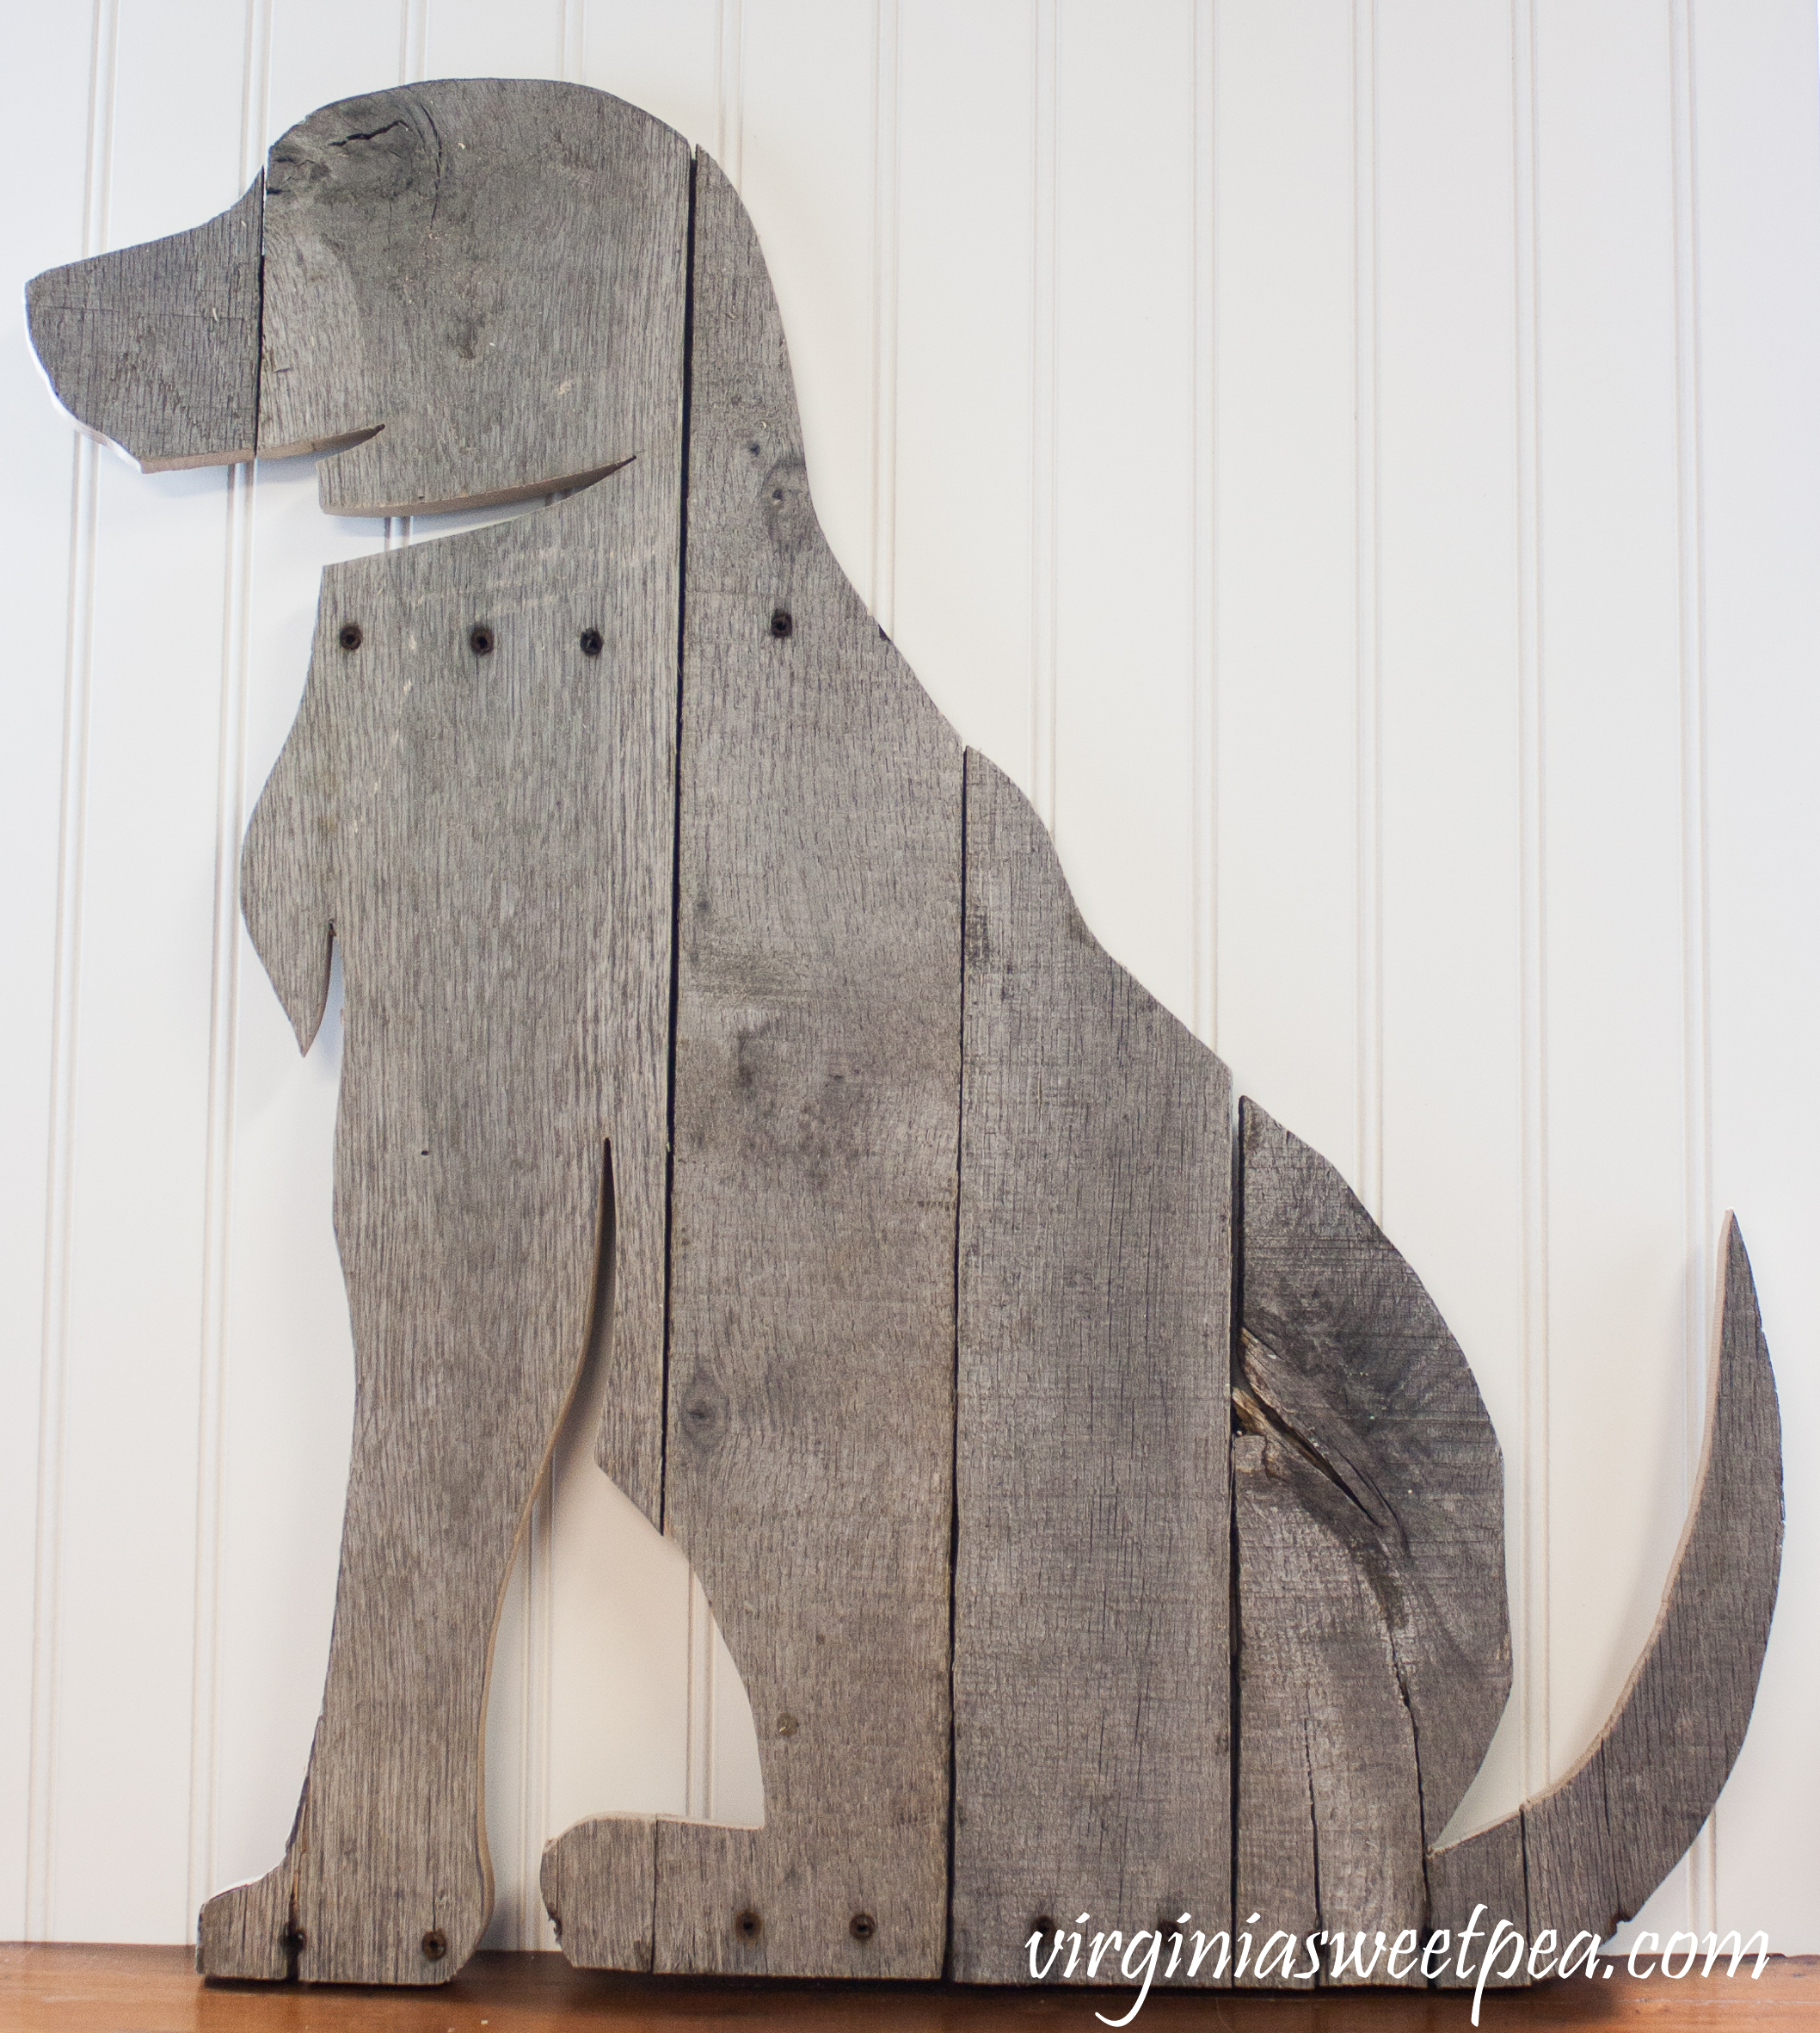 Use pallet wood to make a decorative dog to hang on a wall or display.